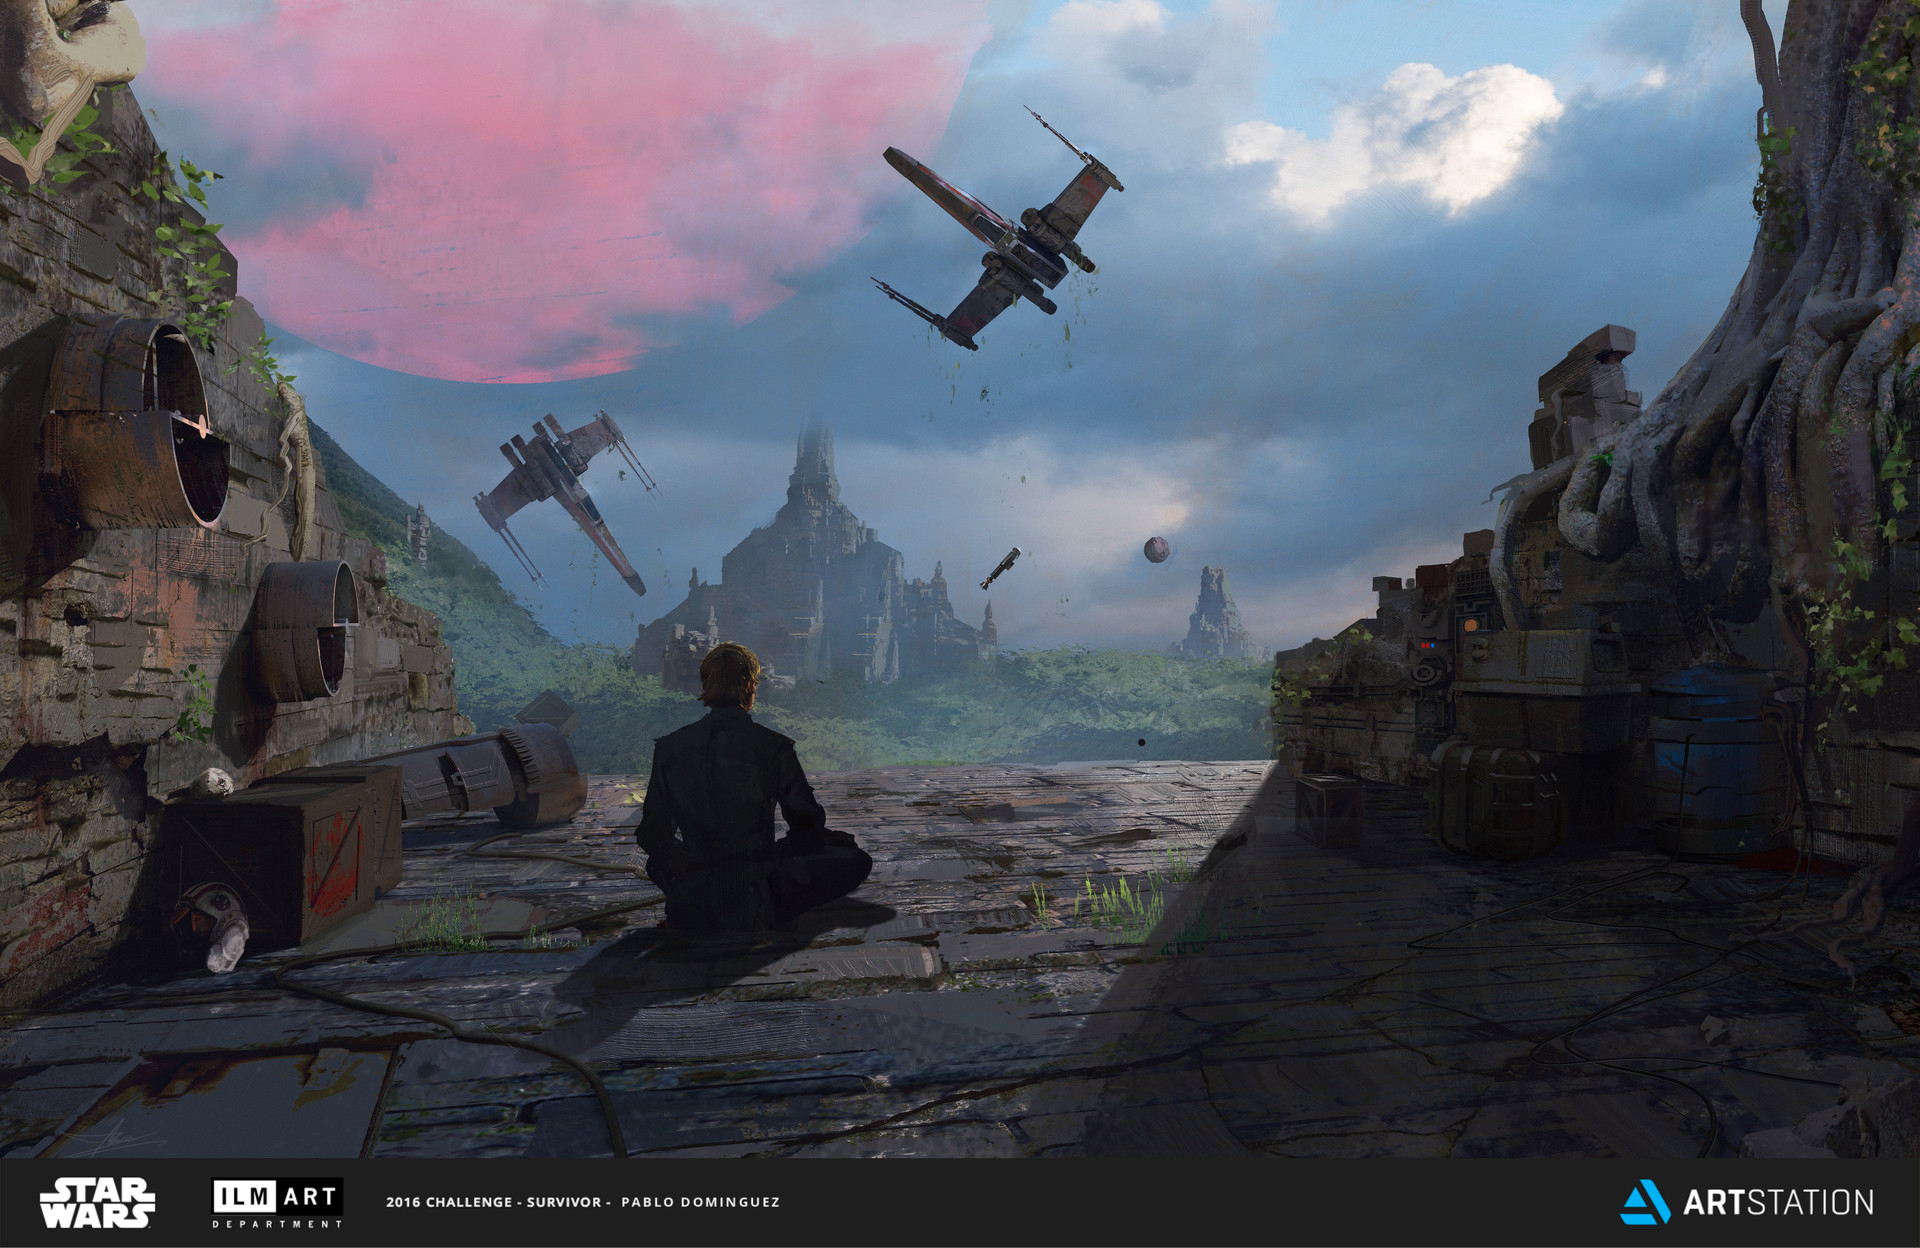 pablo dominguez digital painting Illustration Star Wars Challenge Landscape